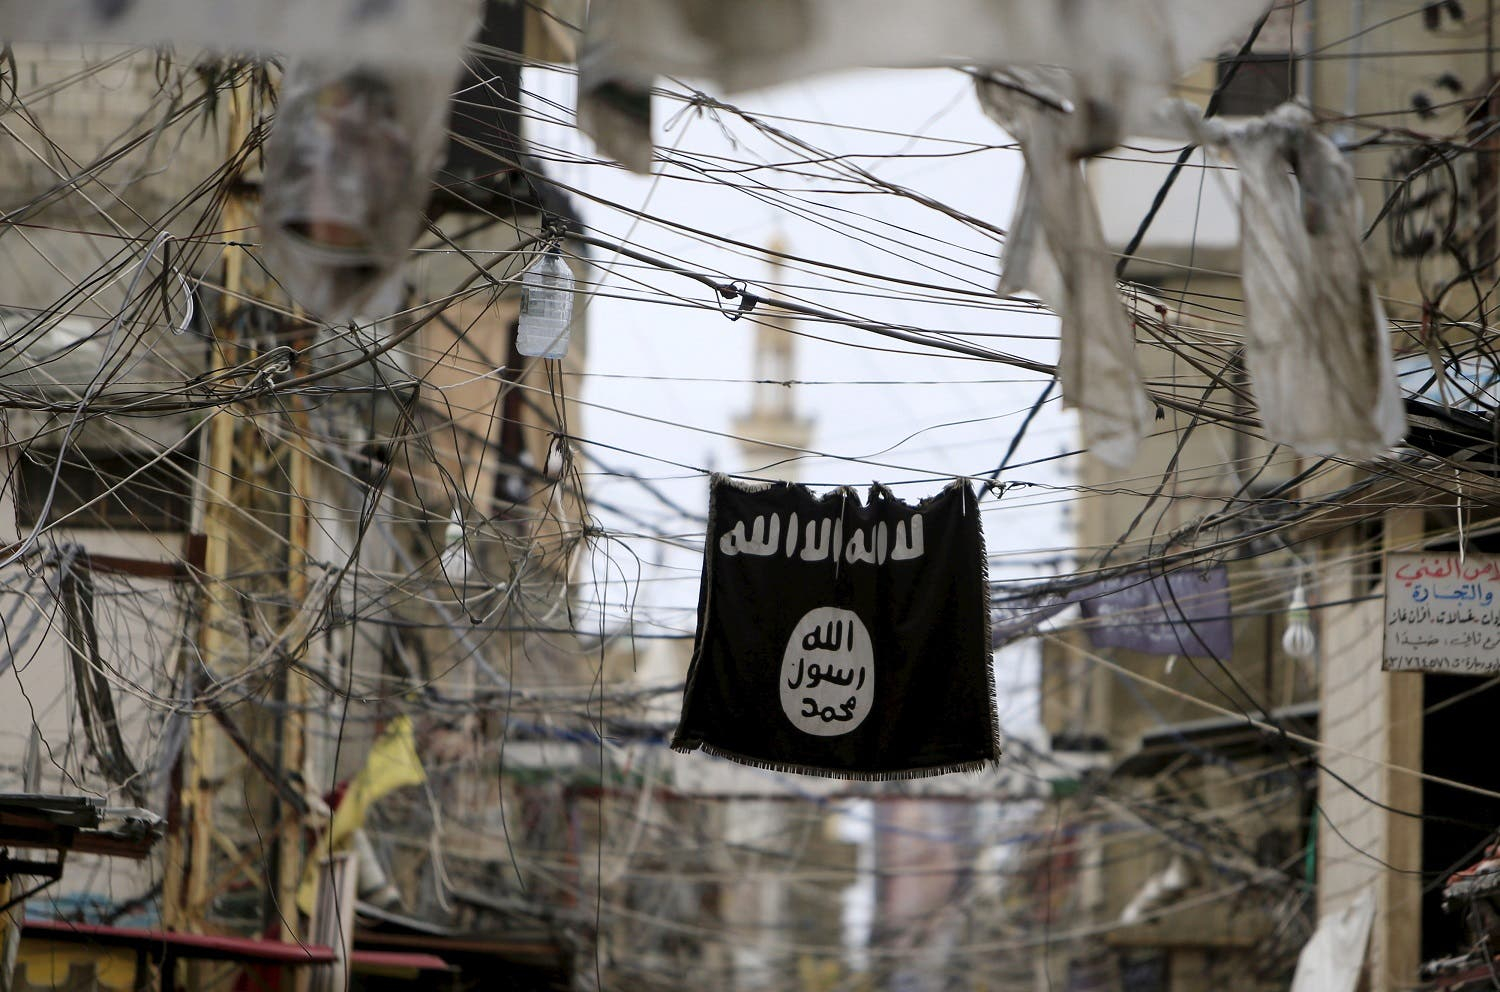 An Islamic State flag hangs amid electric wires over a street in Ain al-Hilweh Palestinian refugee camp, near the port-city of Sidon, southern Lebanon January 19, 2016. REUTERS